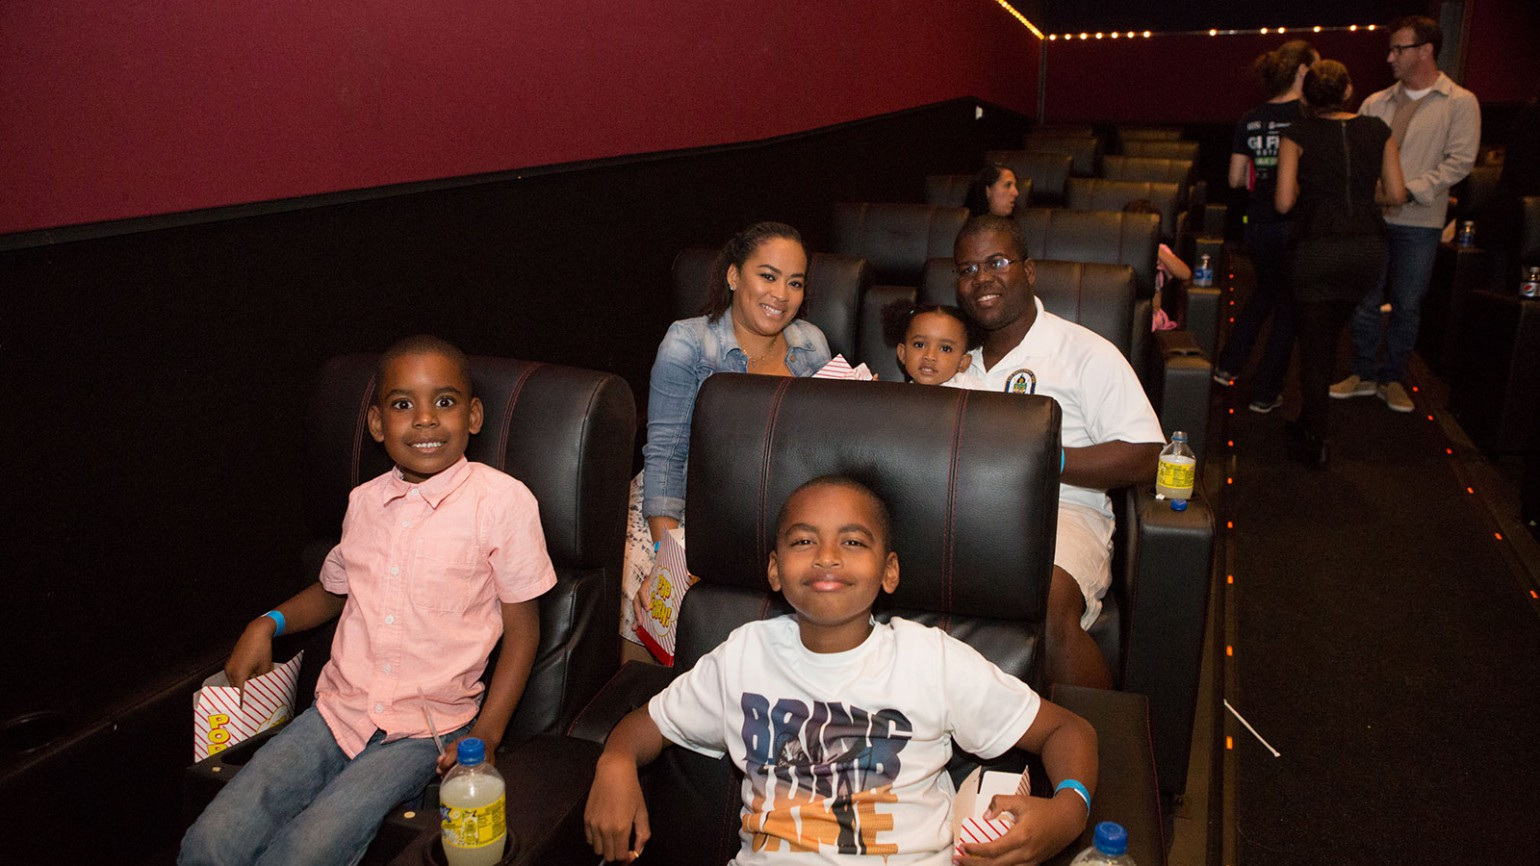 Attendees at our special preview screening of Storks - Family Movie Night 9/16